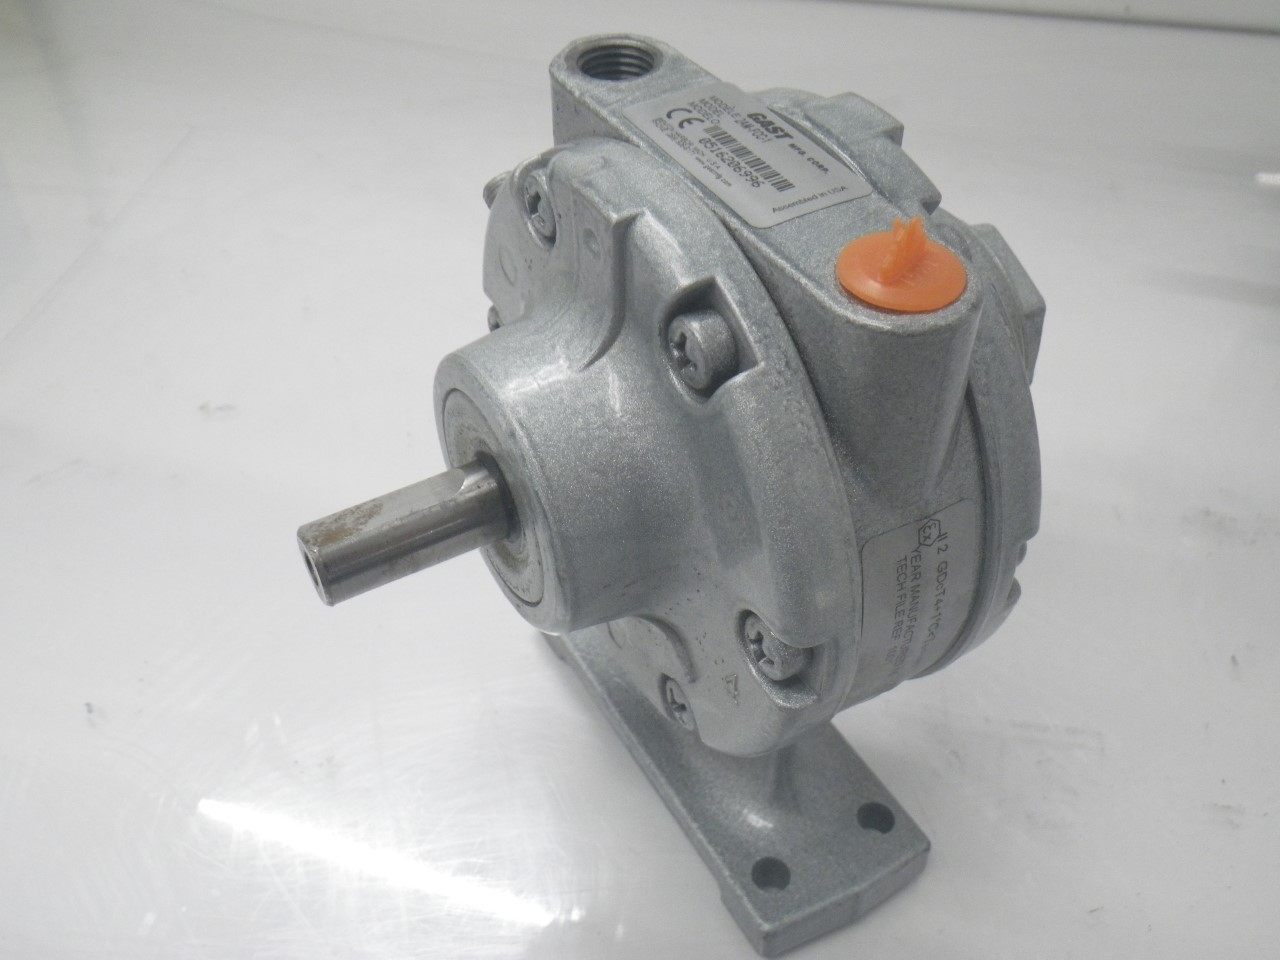 IMGP11832AM-FCC-1 Gast Air Motor (Used Tested) (Very Good Condition) (11)